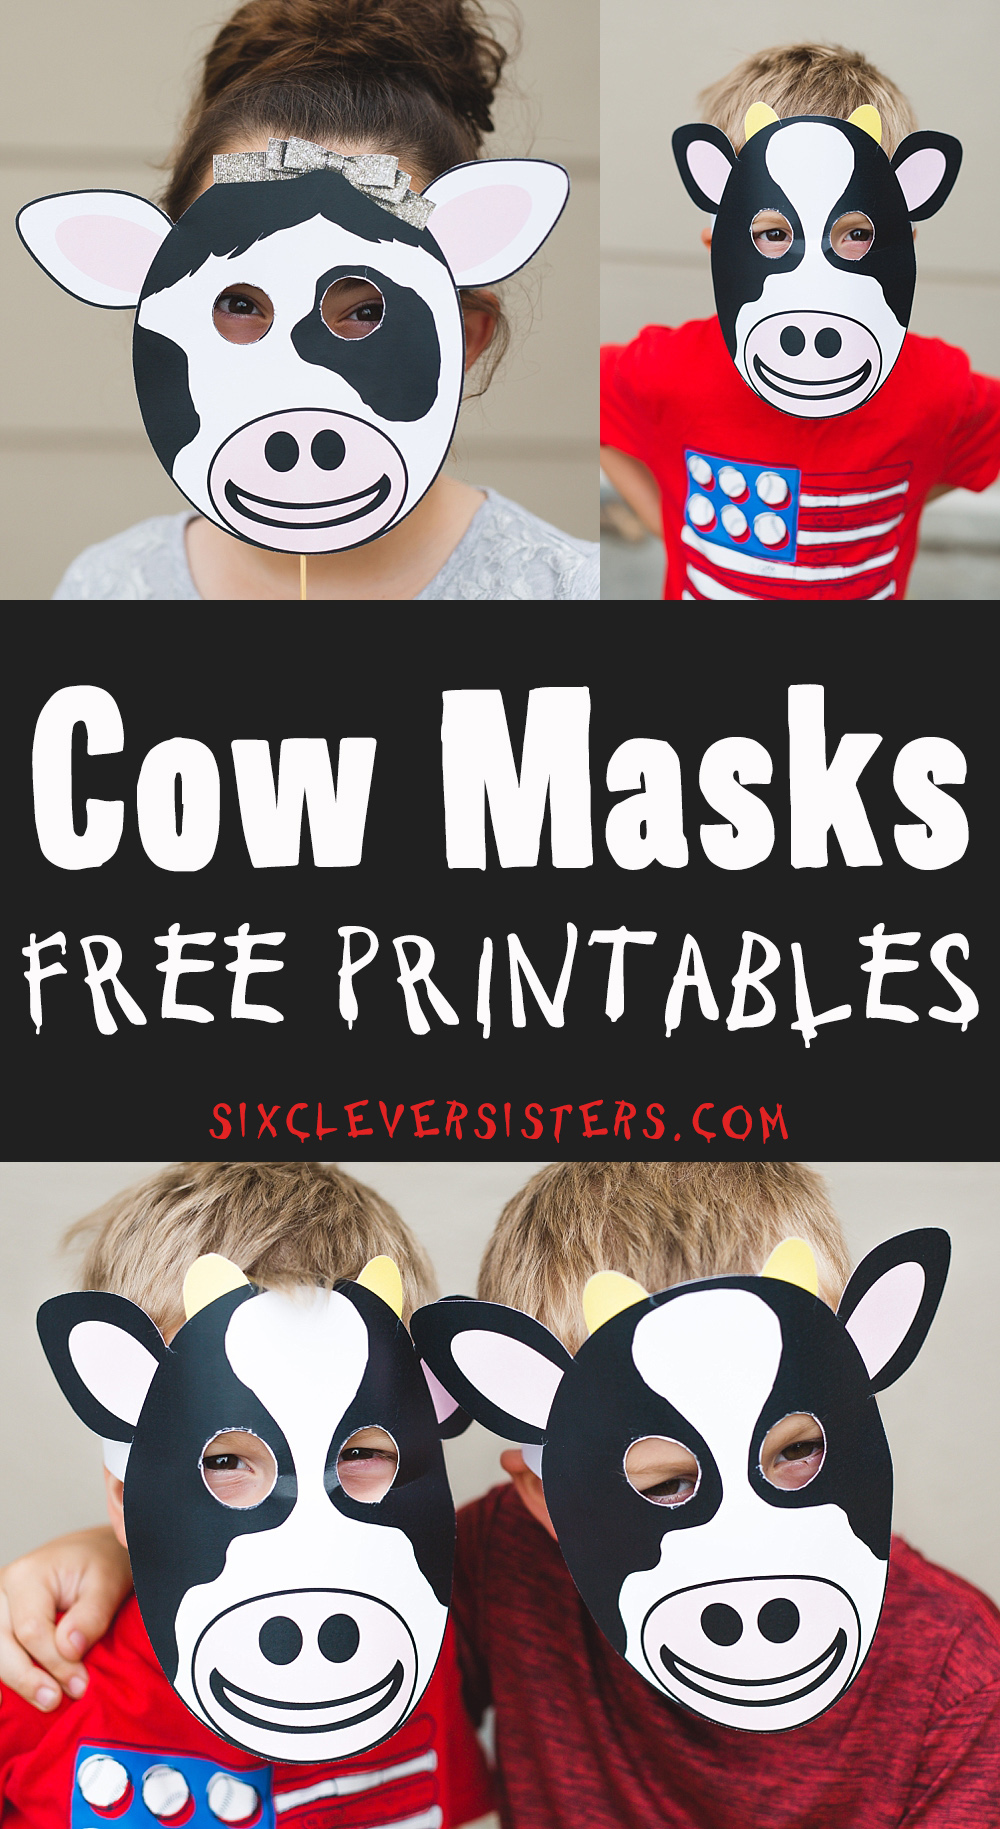 photo regarding Cow Mask Printable identify Chick Fil A Cow Mask - 6 Good Sisters